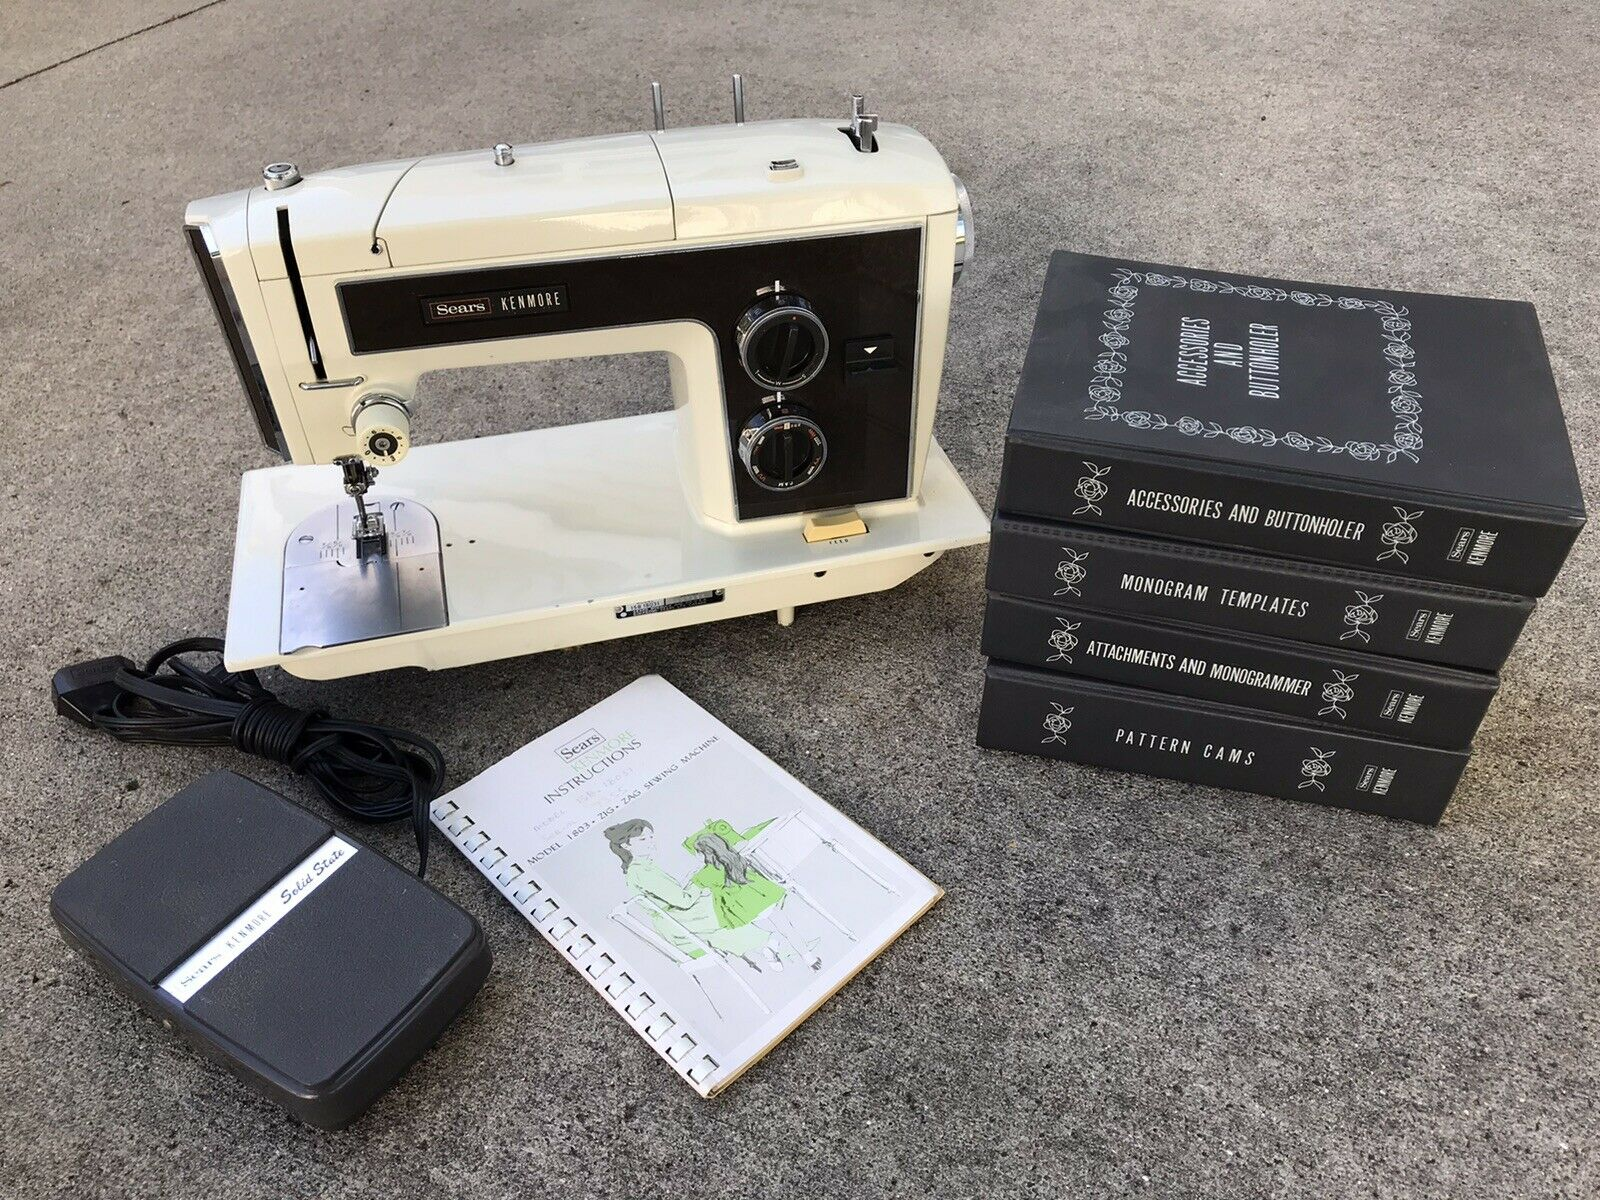 s l1600 - SEARS KENMORE Sewing Machine 1803 w/ Monogramer Cams Extras 1.2 Amp EXCELLENT